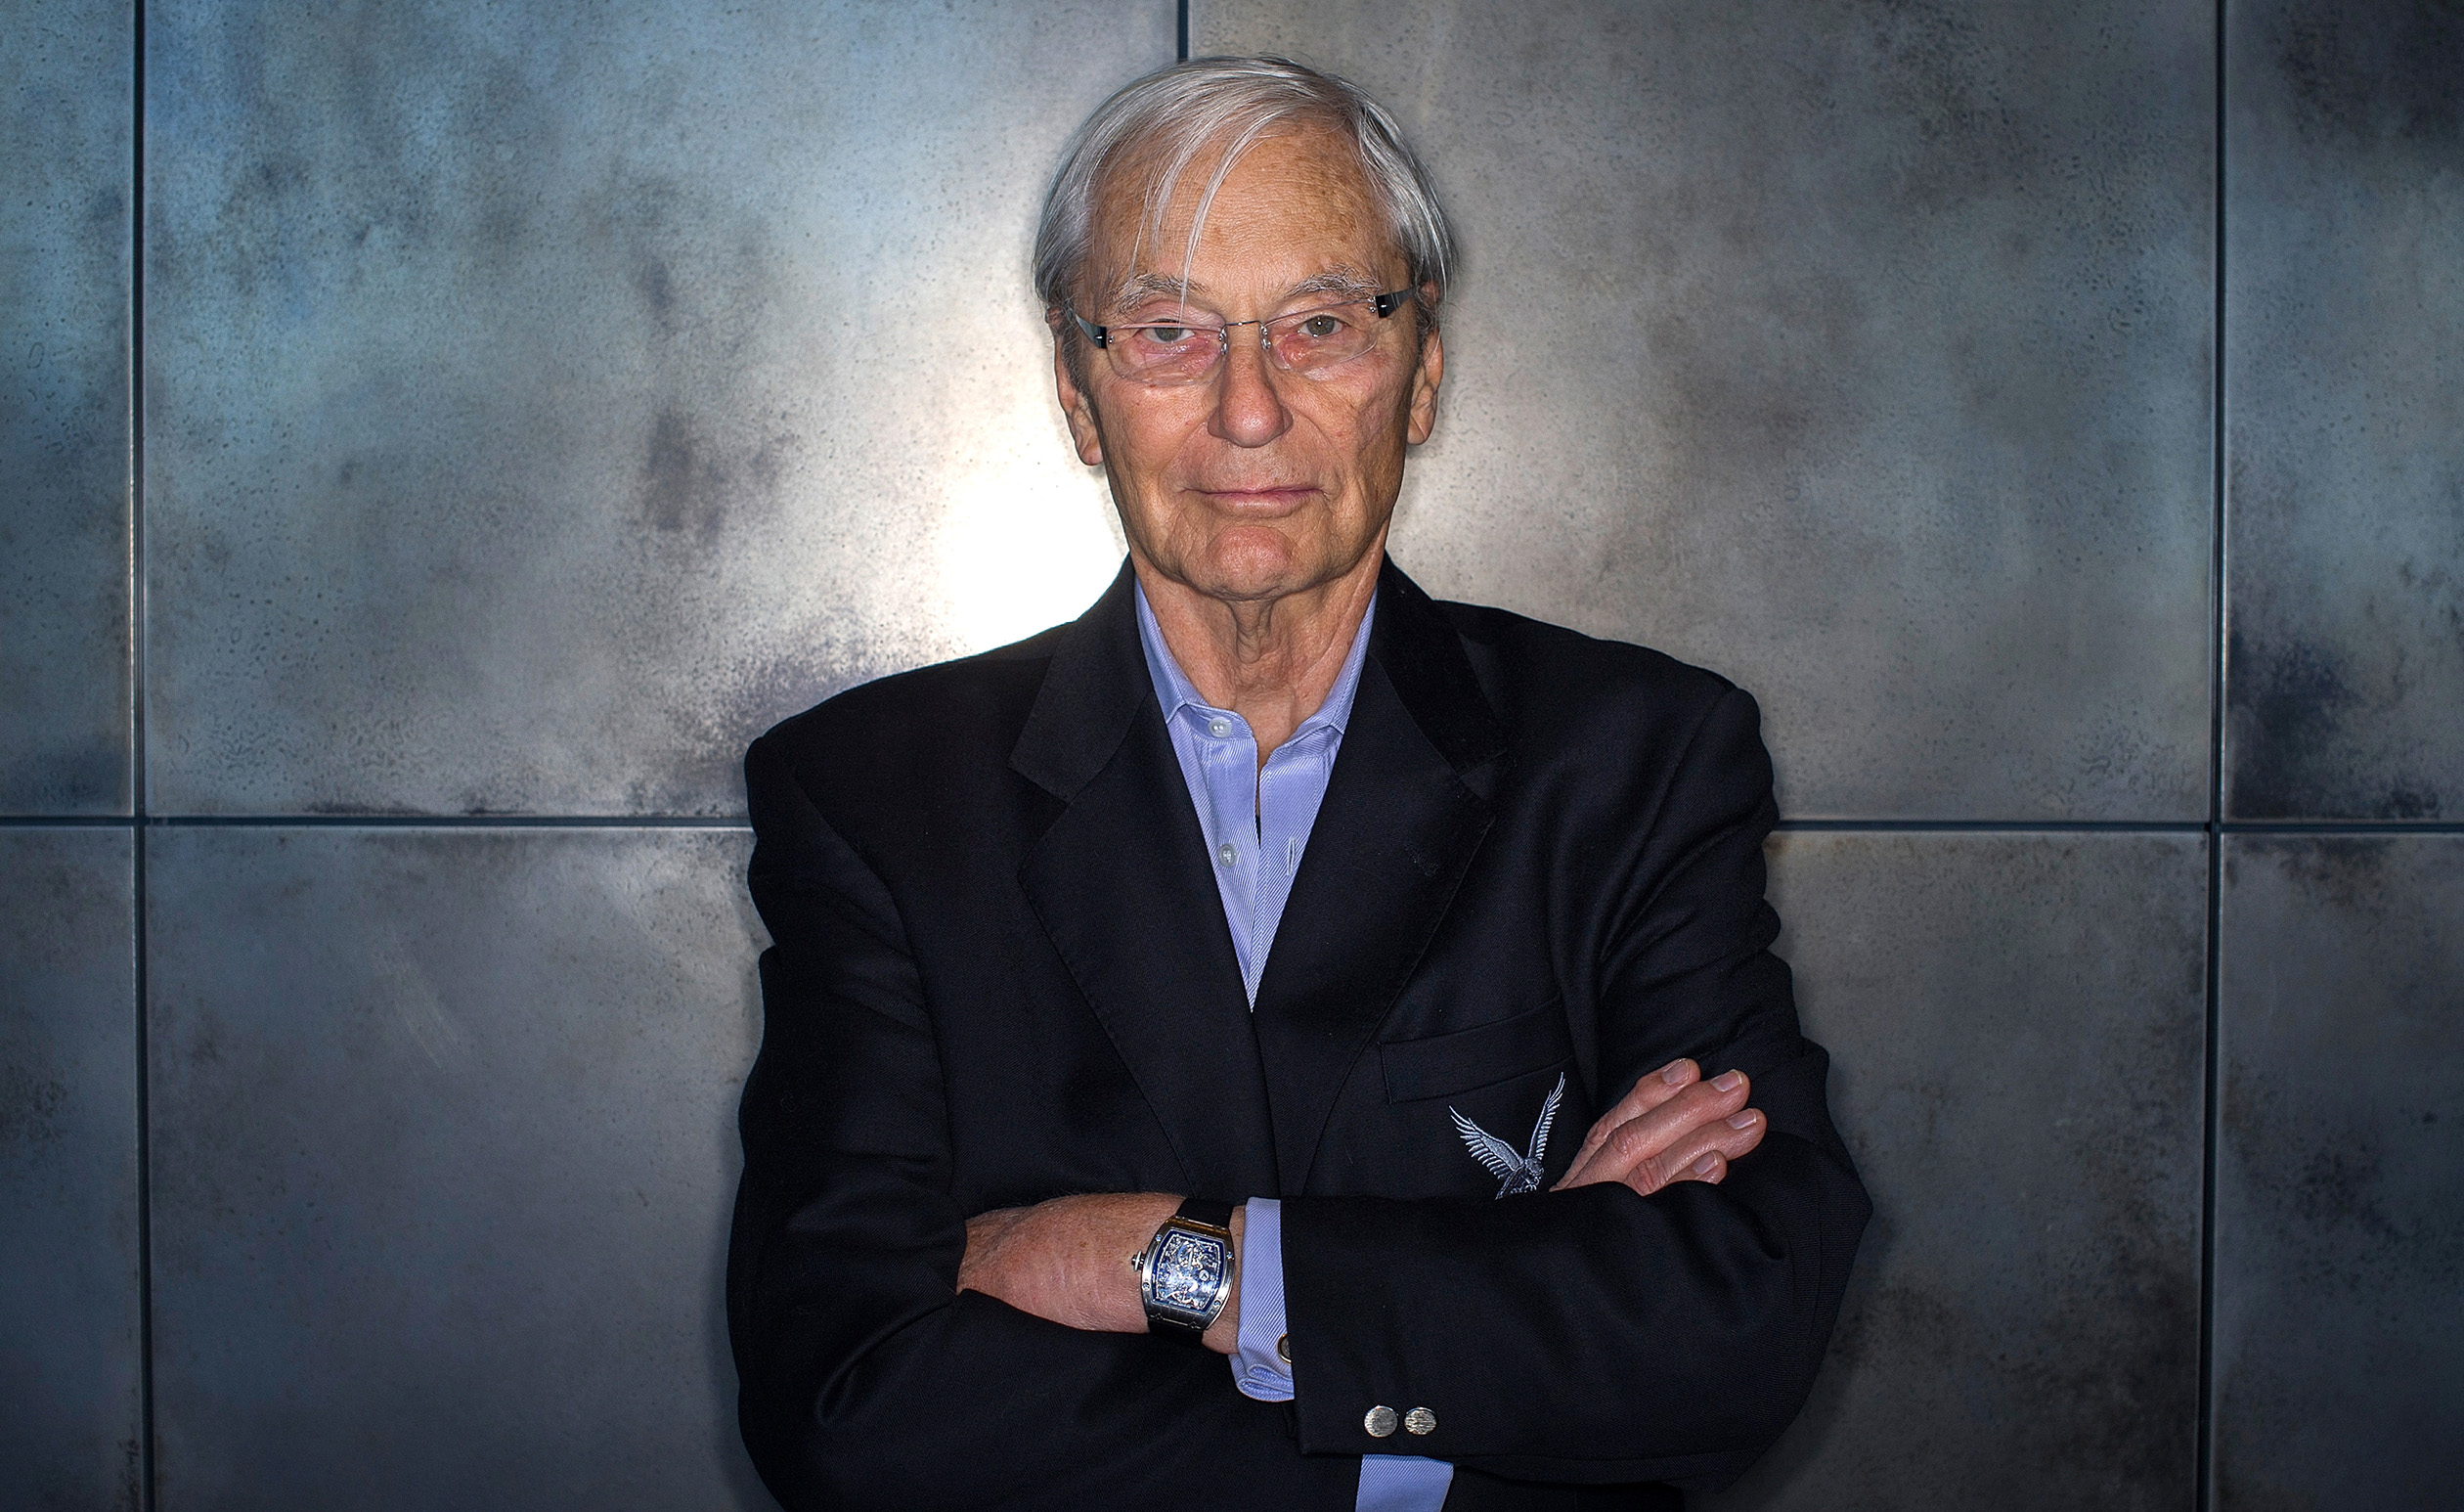 Kleiner Perkins Caufield & Byers Co-Founder Tom Perkins Portraits